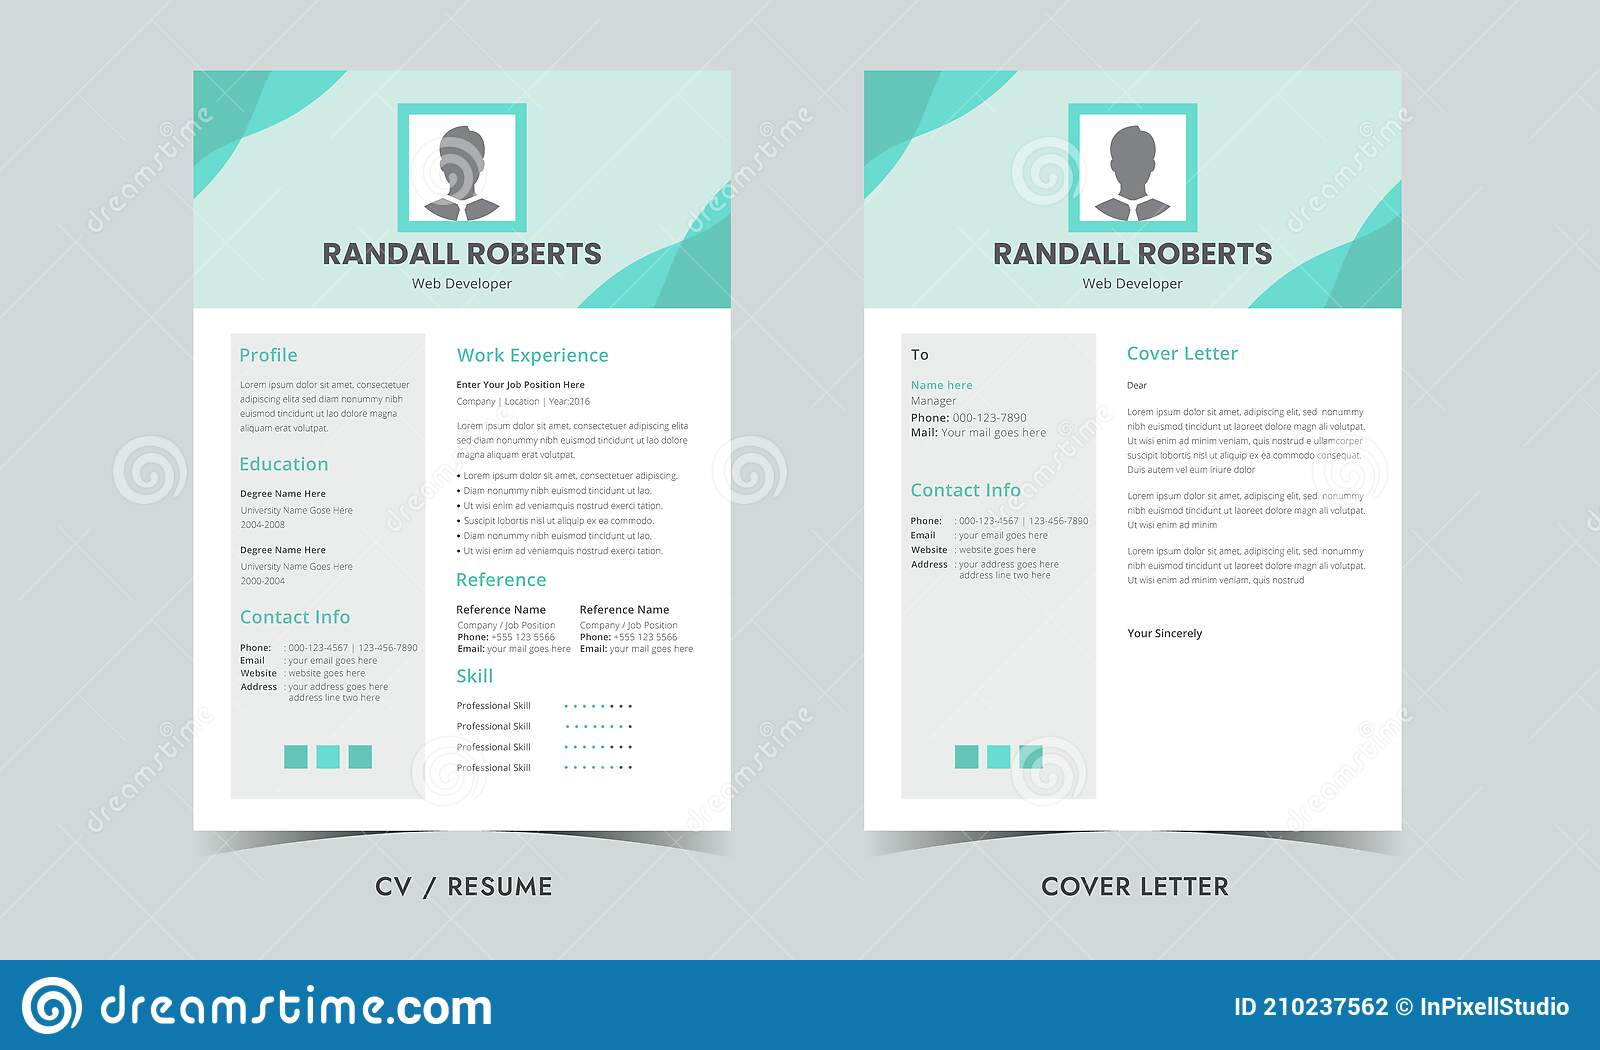 This modern resume template is an exquisite, simple project which would be an excellent fit for more formal job applications e.g. Resume Template Cv Professional Resume And Cover Letter Minimalist Resume Cv Template Stock Vector Illustration Of Jobs Simplicity 210237562